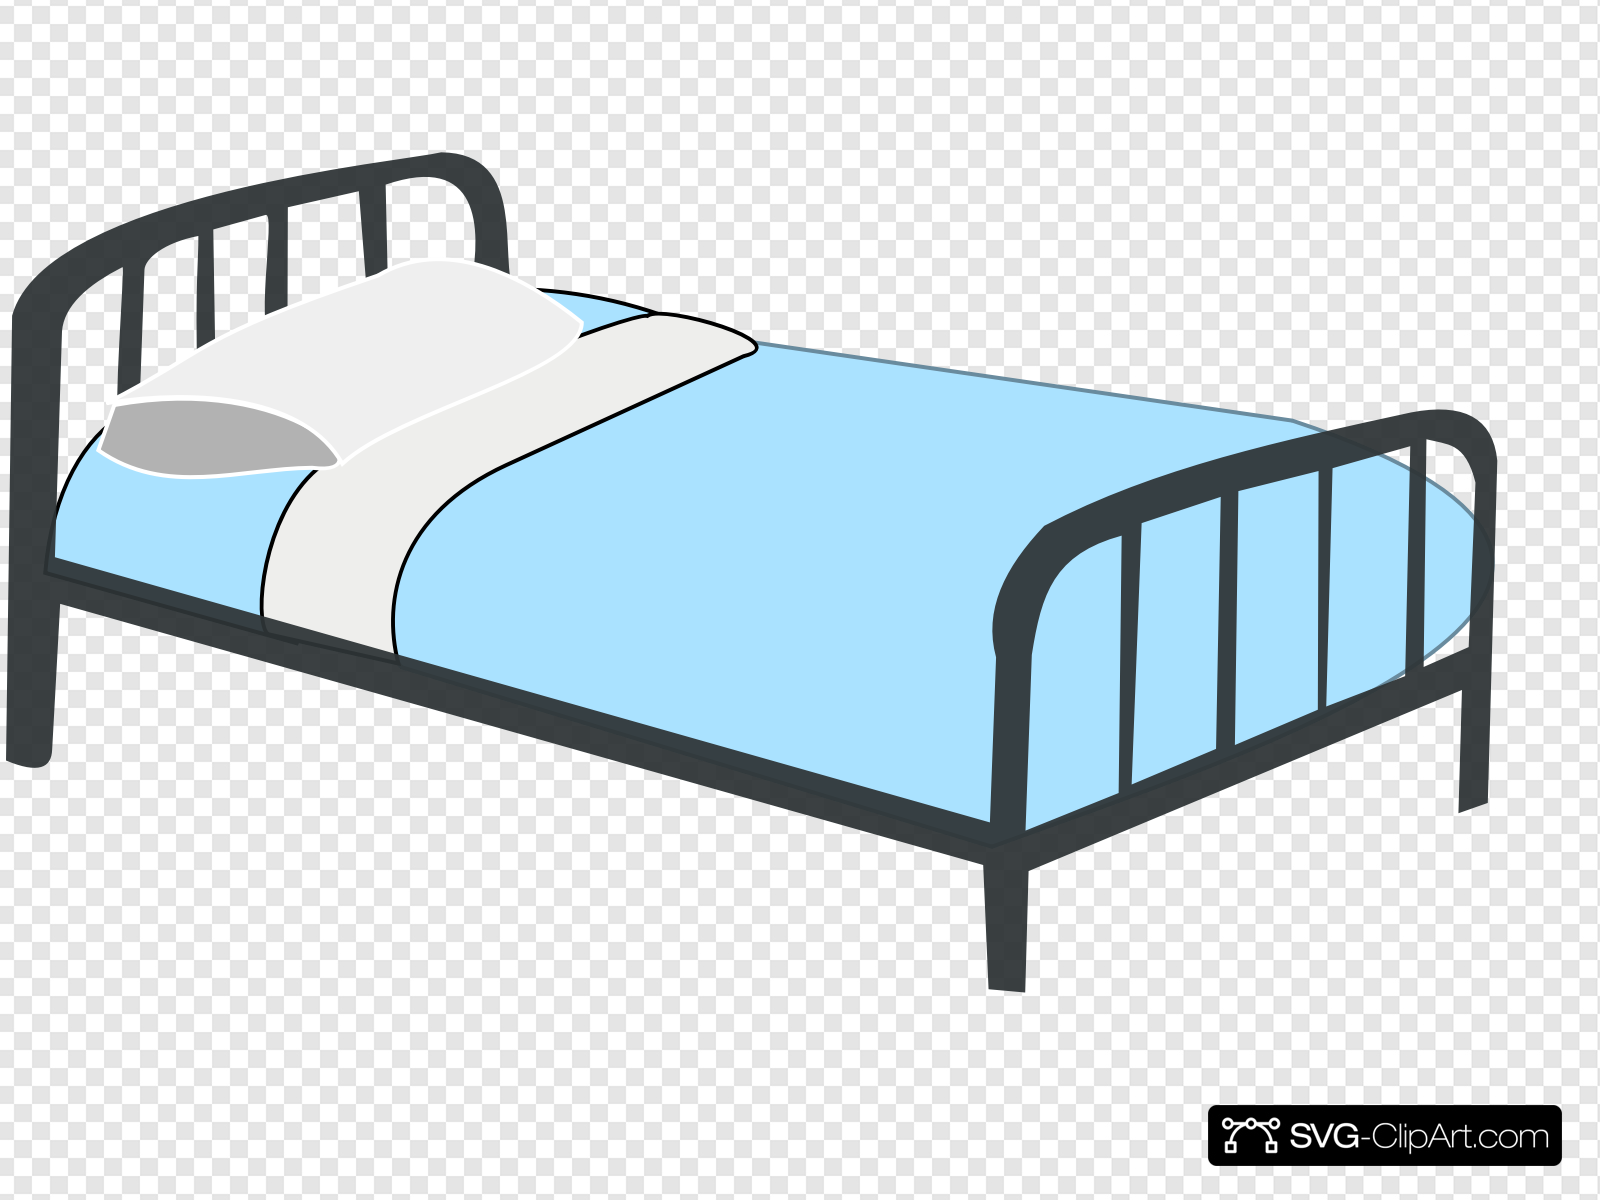 Hospital Bed Clip art, Icon and SVG.